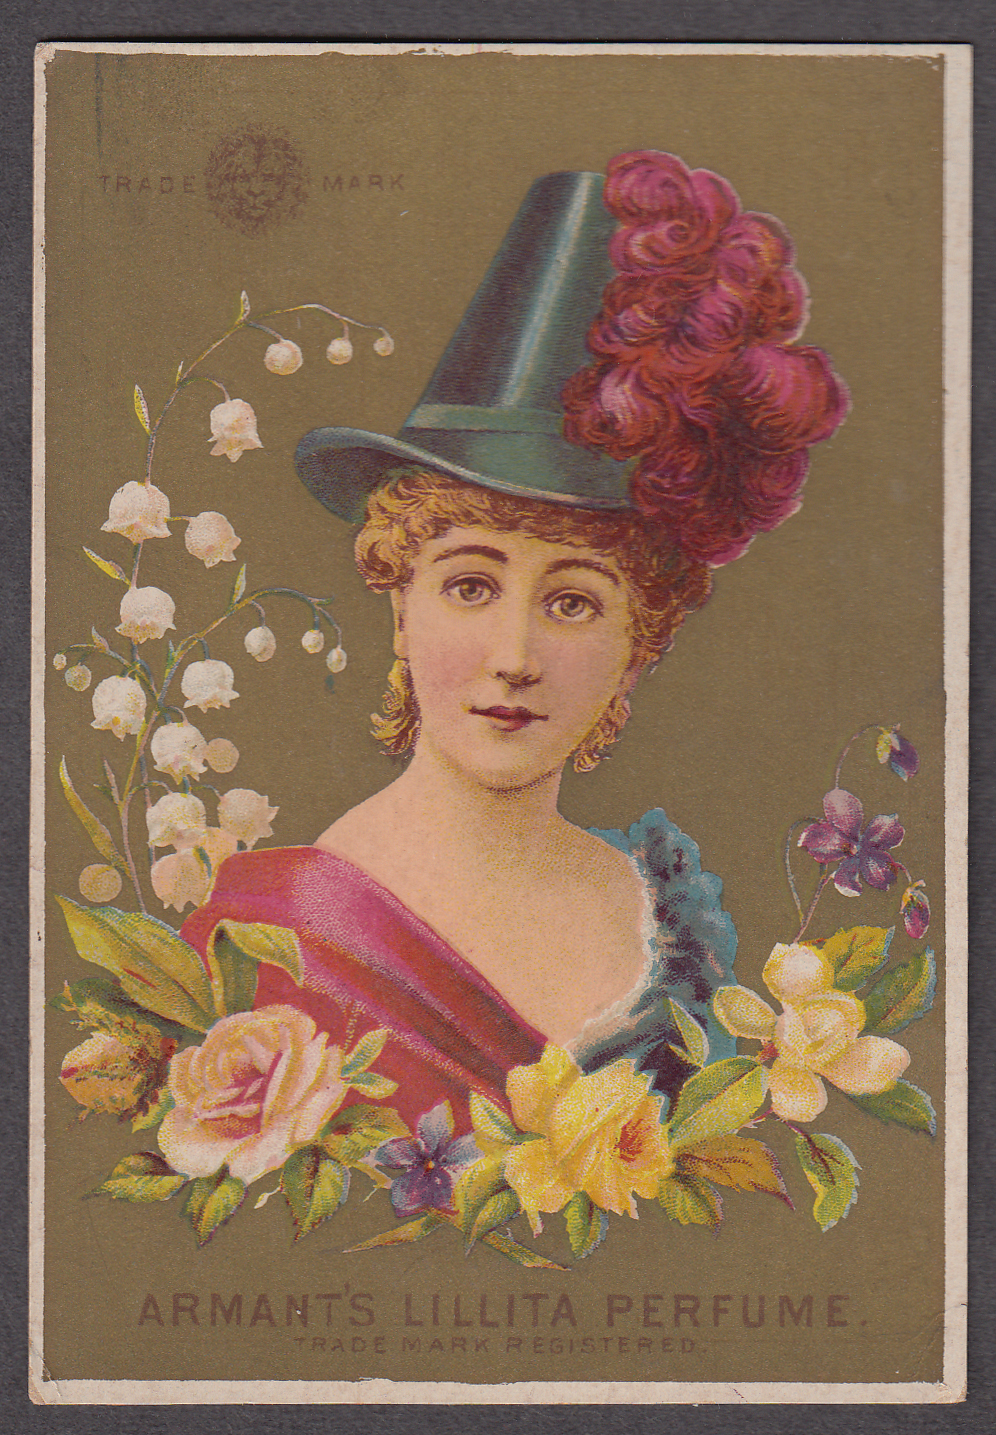 Armant's Lillita Perfume trade card 1880s lady in feathered hat